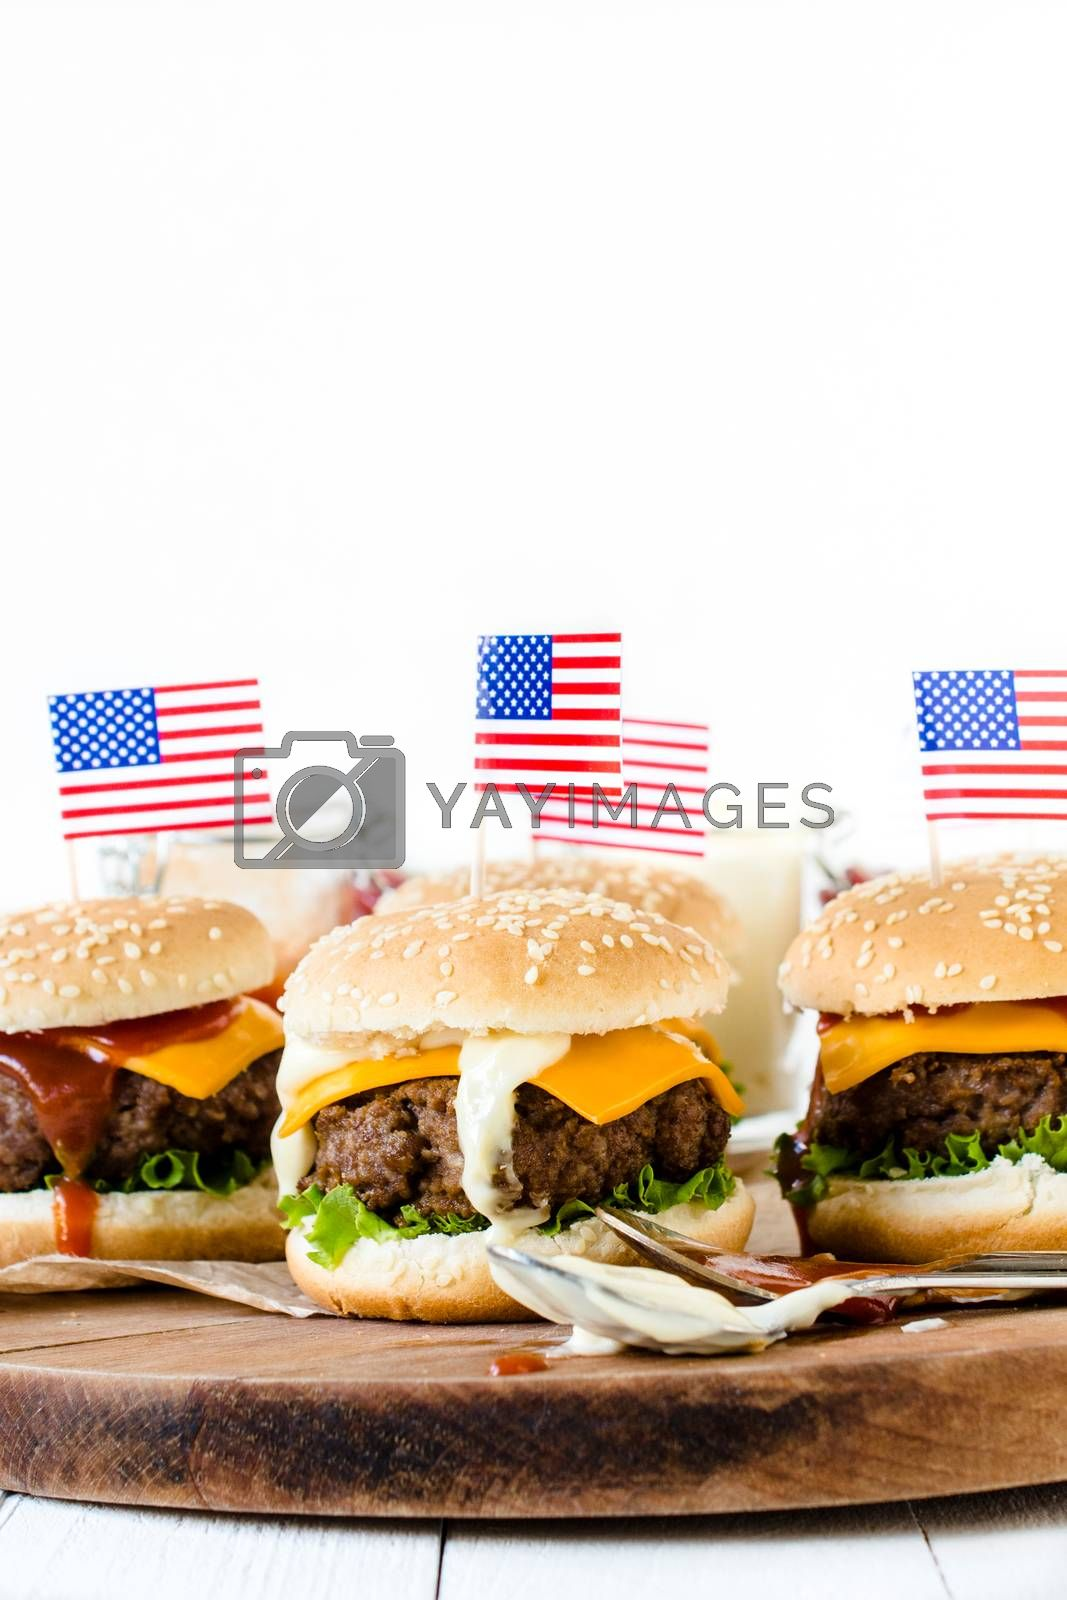 American mini beef burgers with cheese and USA flags,selective focus and blank space